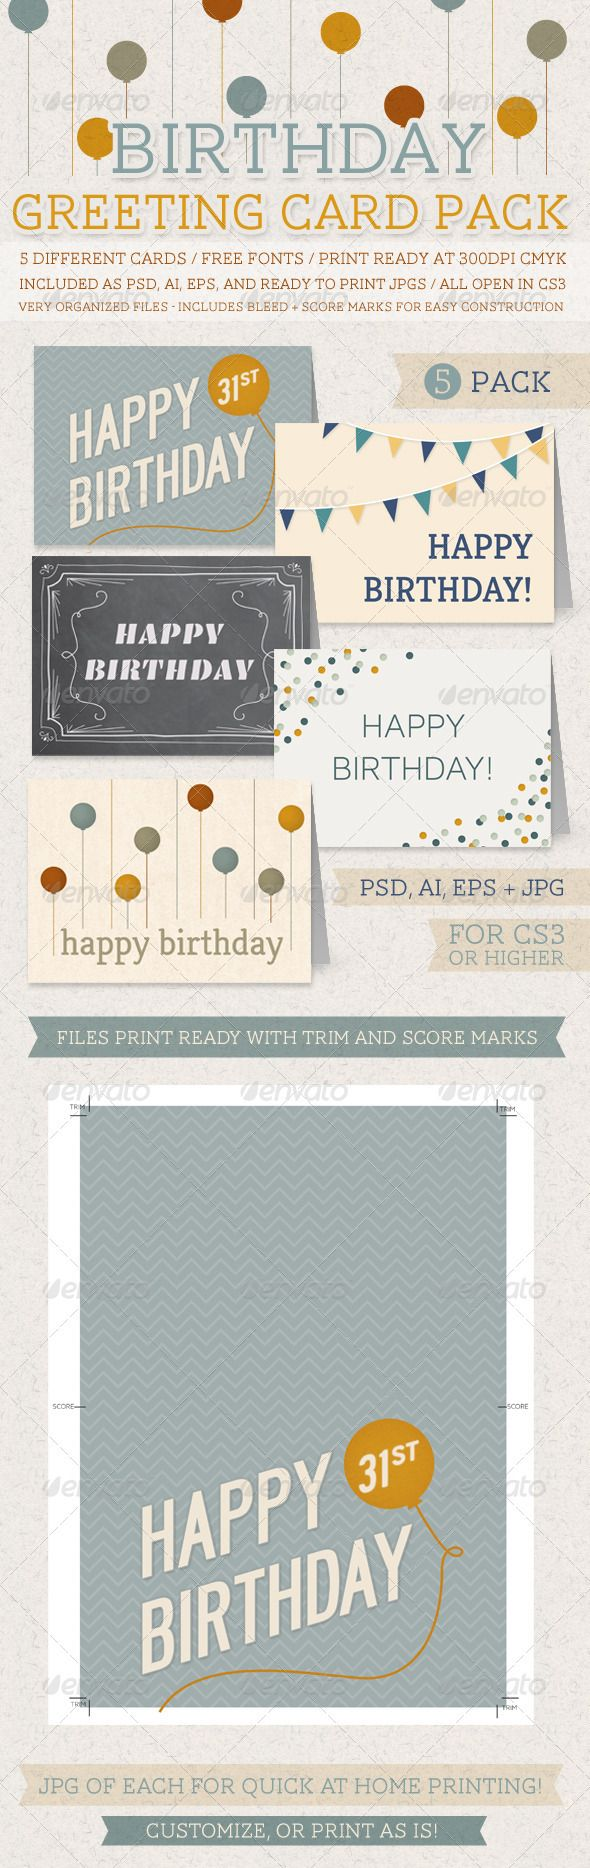 Birthday Greeting Card Pack Pinterest Birthday Greeting Cards